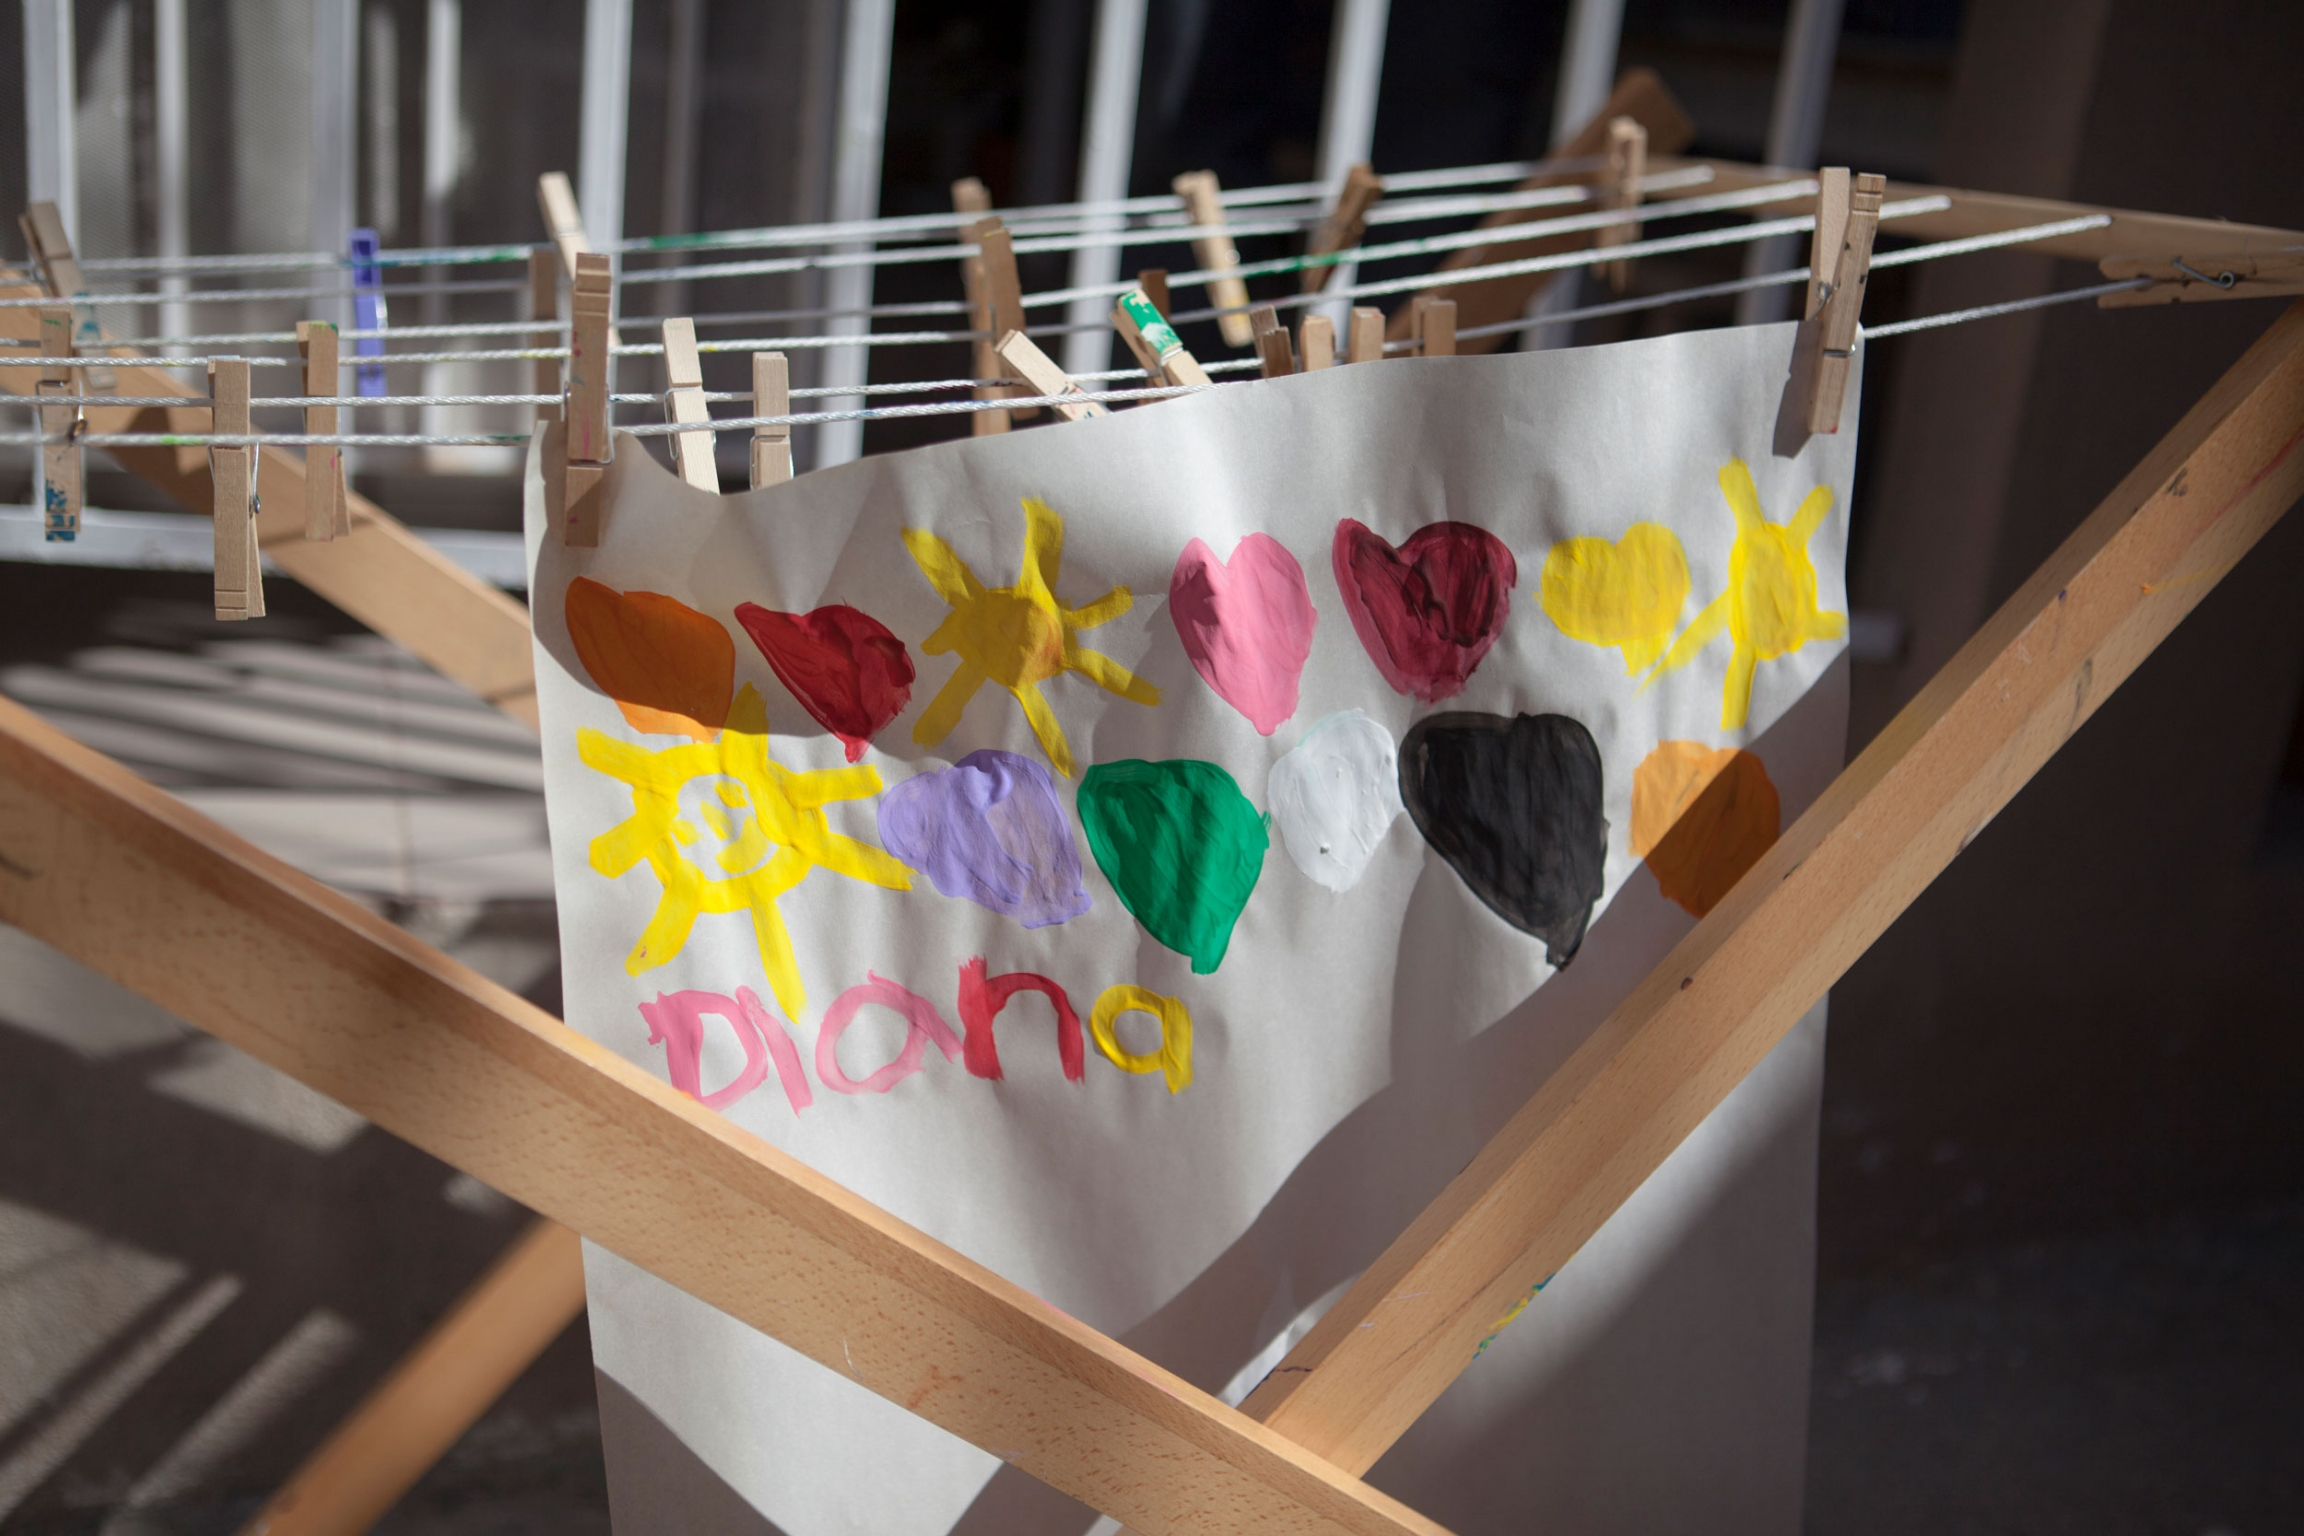 A white paper is shown with colorful hearts painted on it hanging from a wooden rack.